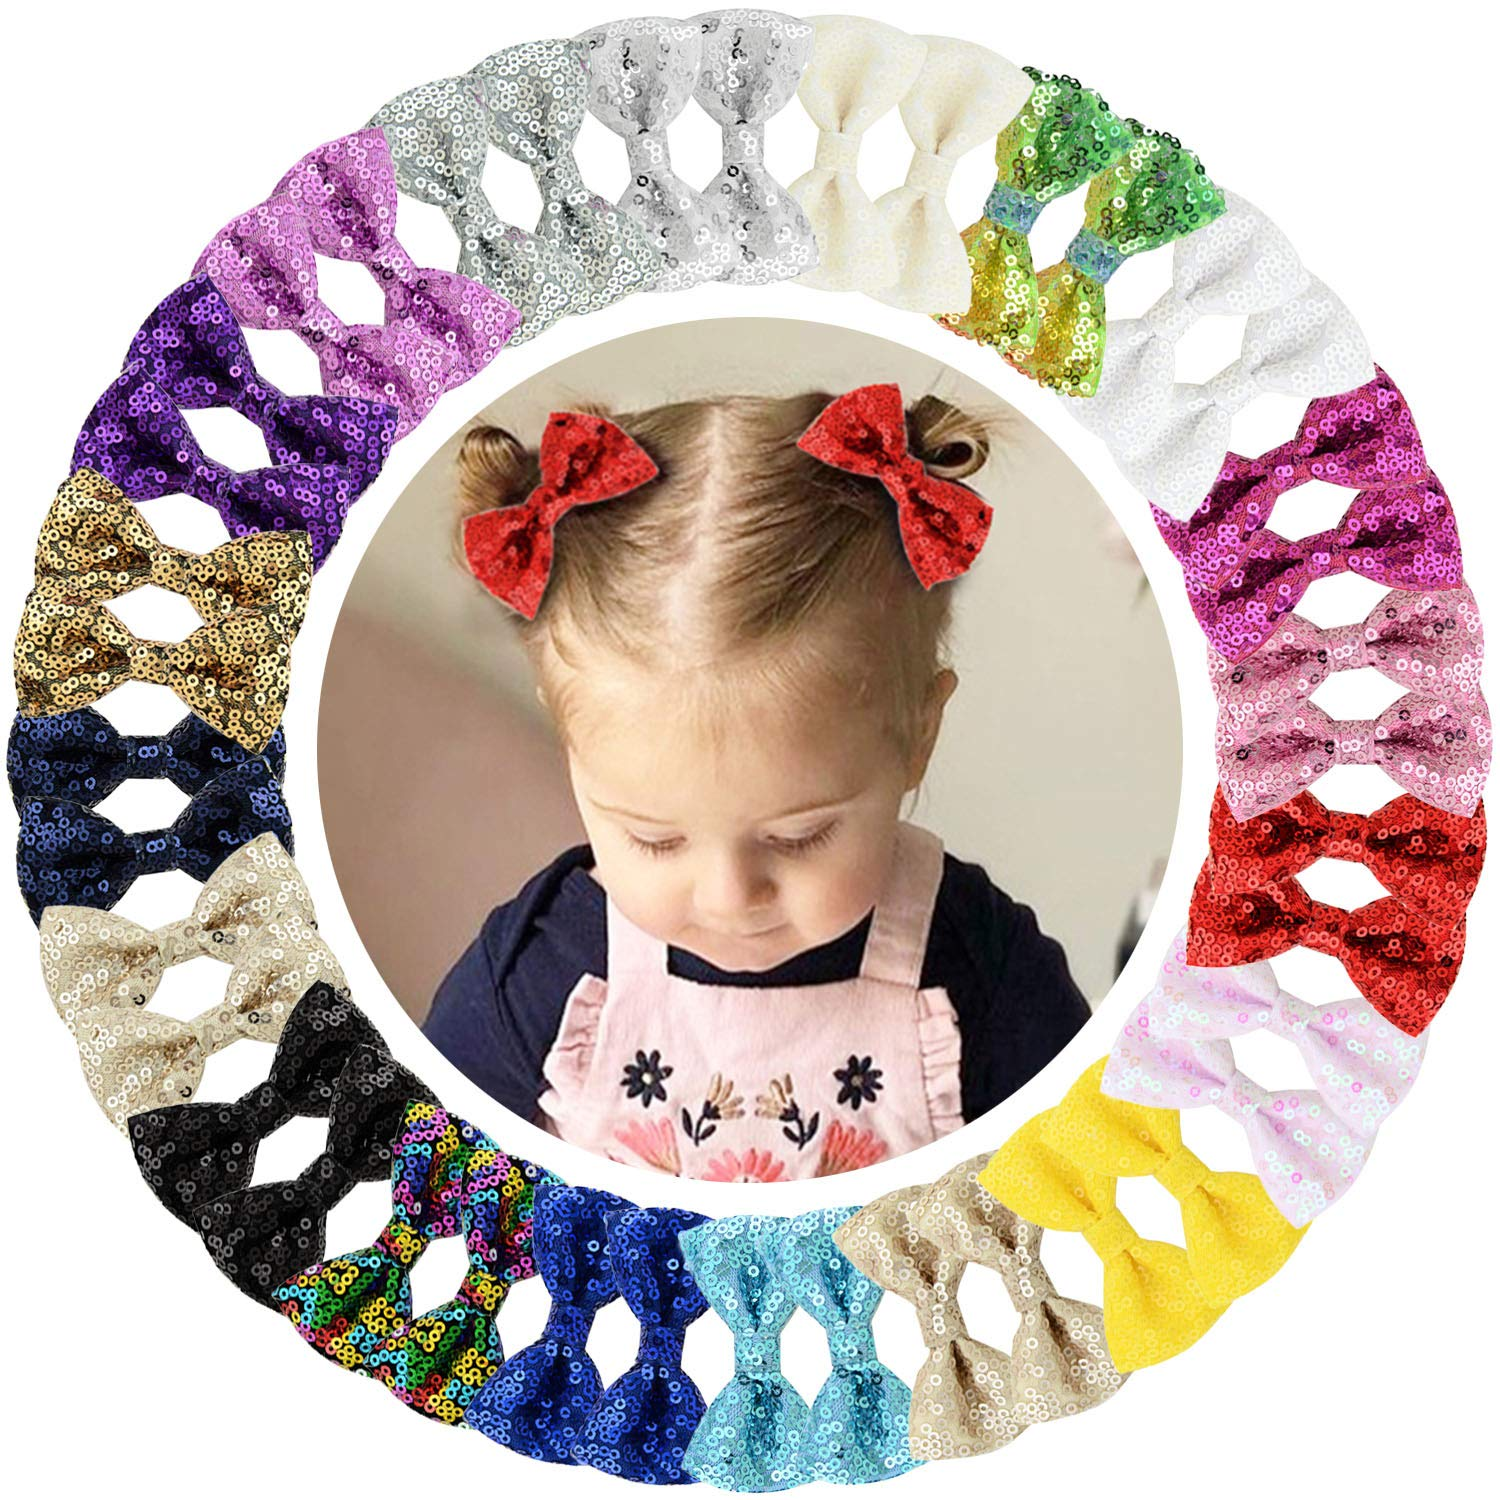 Qearl 40Pcs 2.75 Inch Glitter Hair Bows for Girls Sequin Bows with Alligator Clips Hair Accessories for Baby Girls Toddlers Kids In Pairs